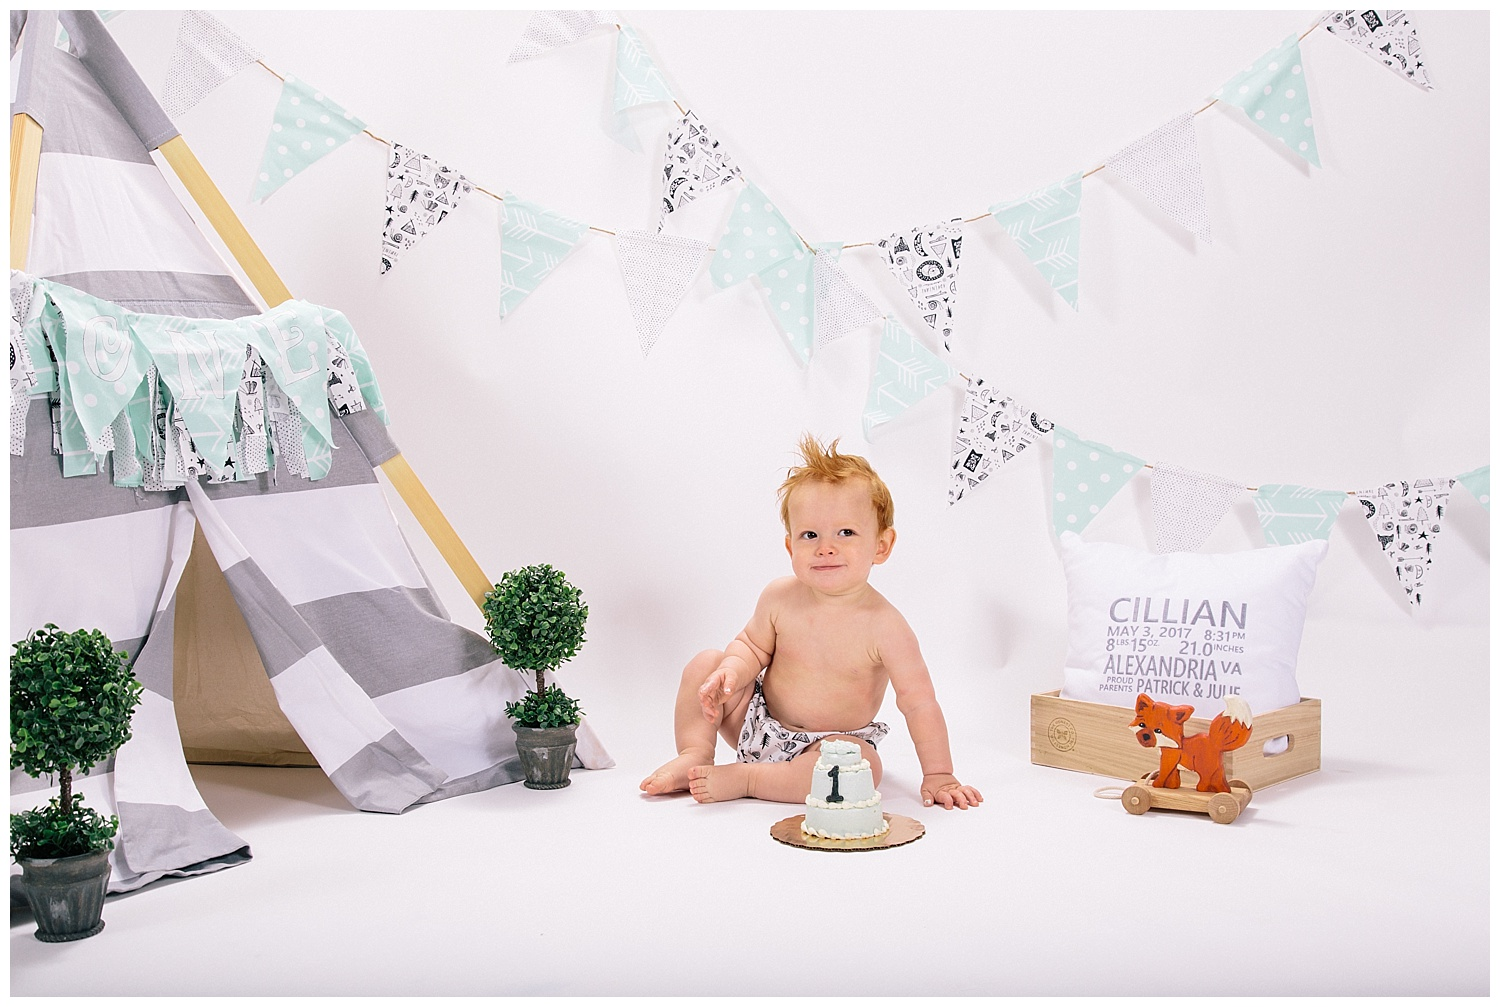 emily-belson-photography-one-year-cillian-11.jpg